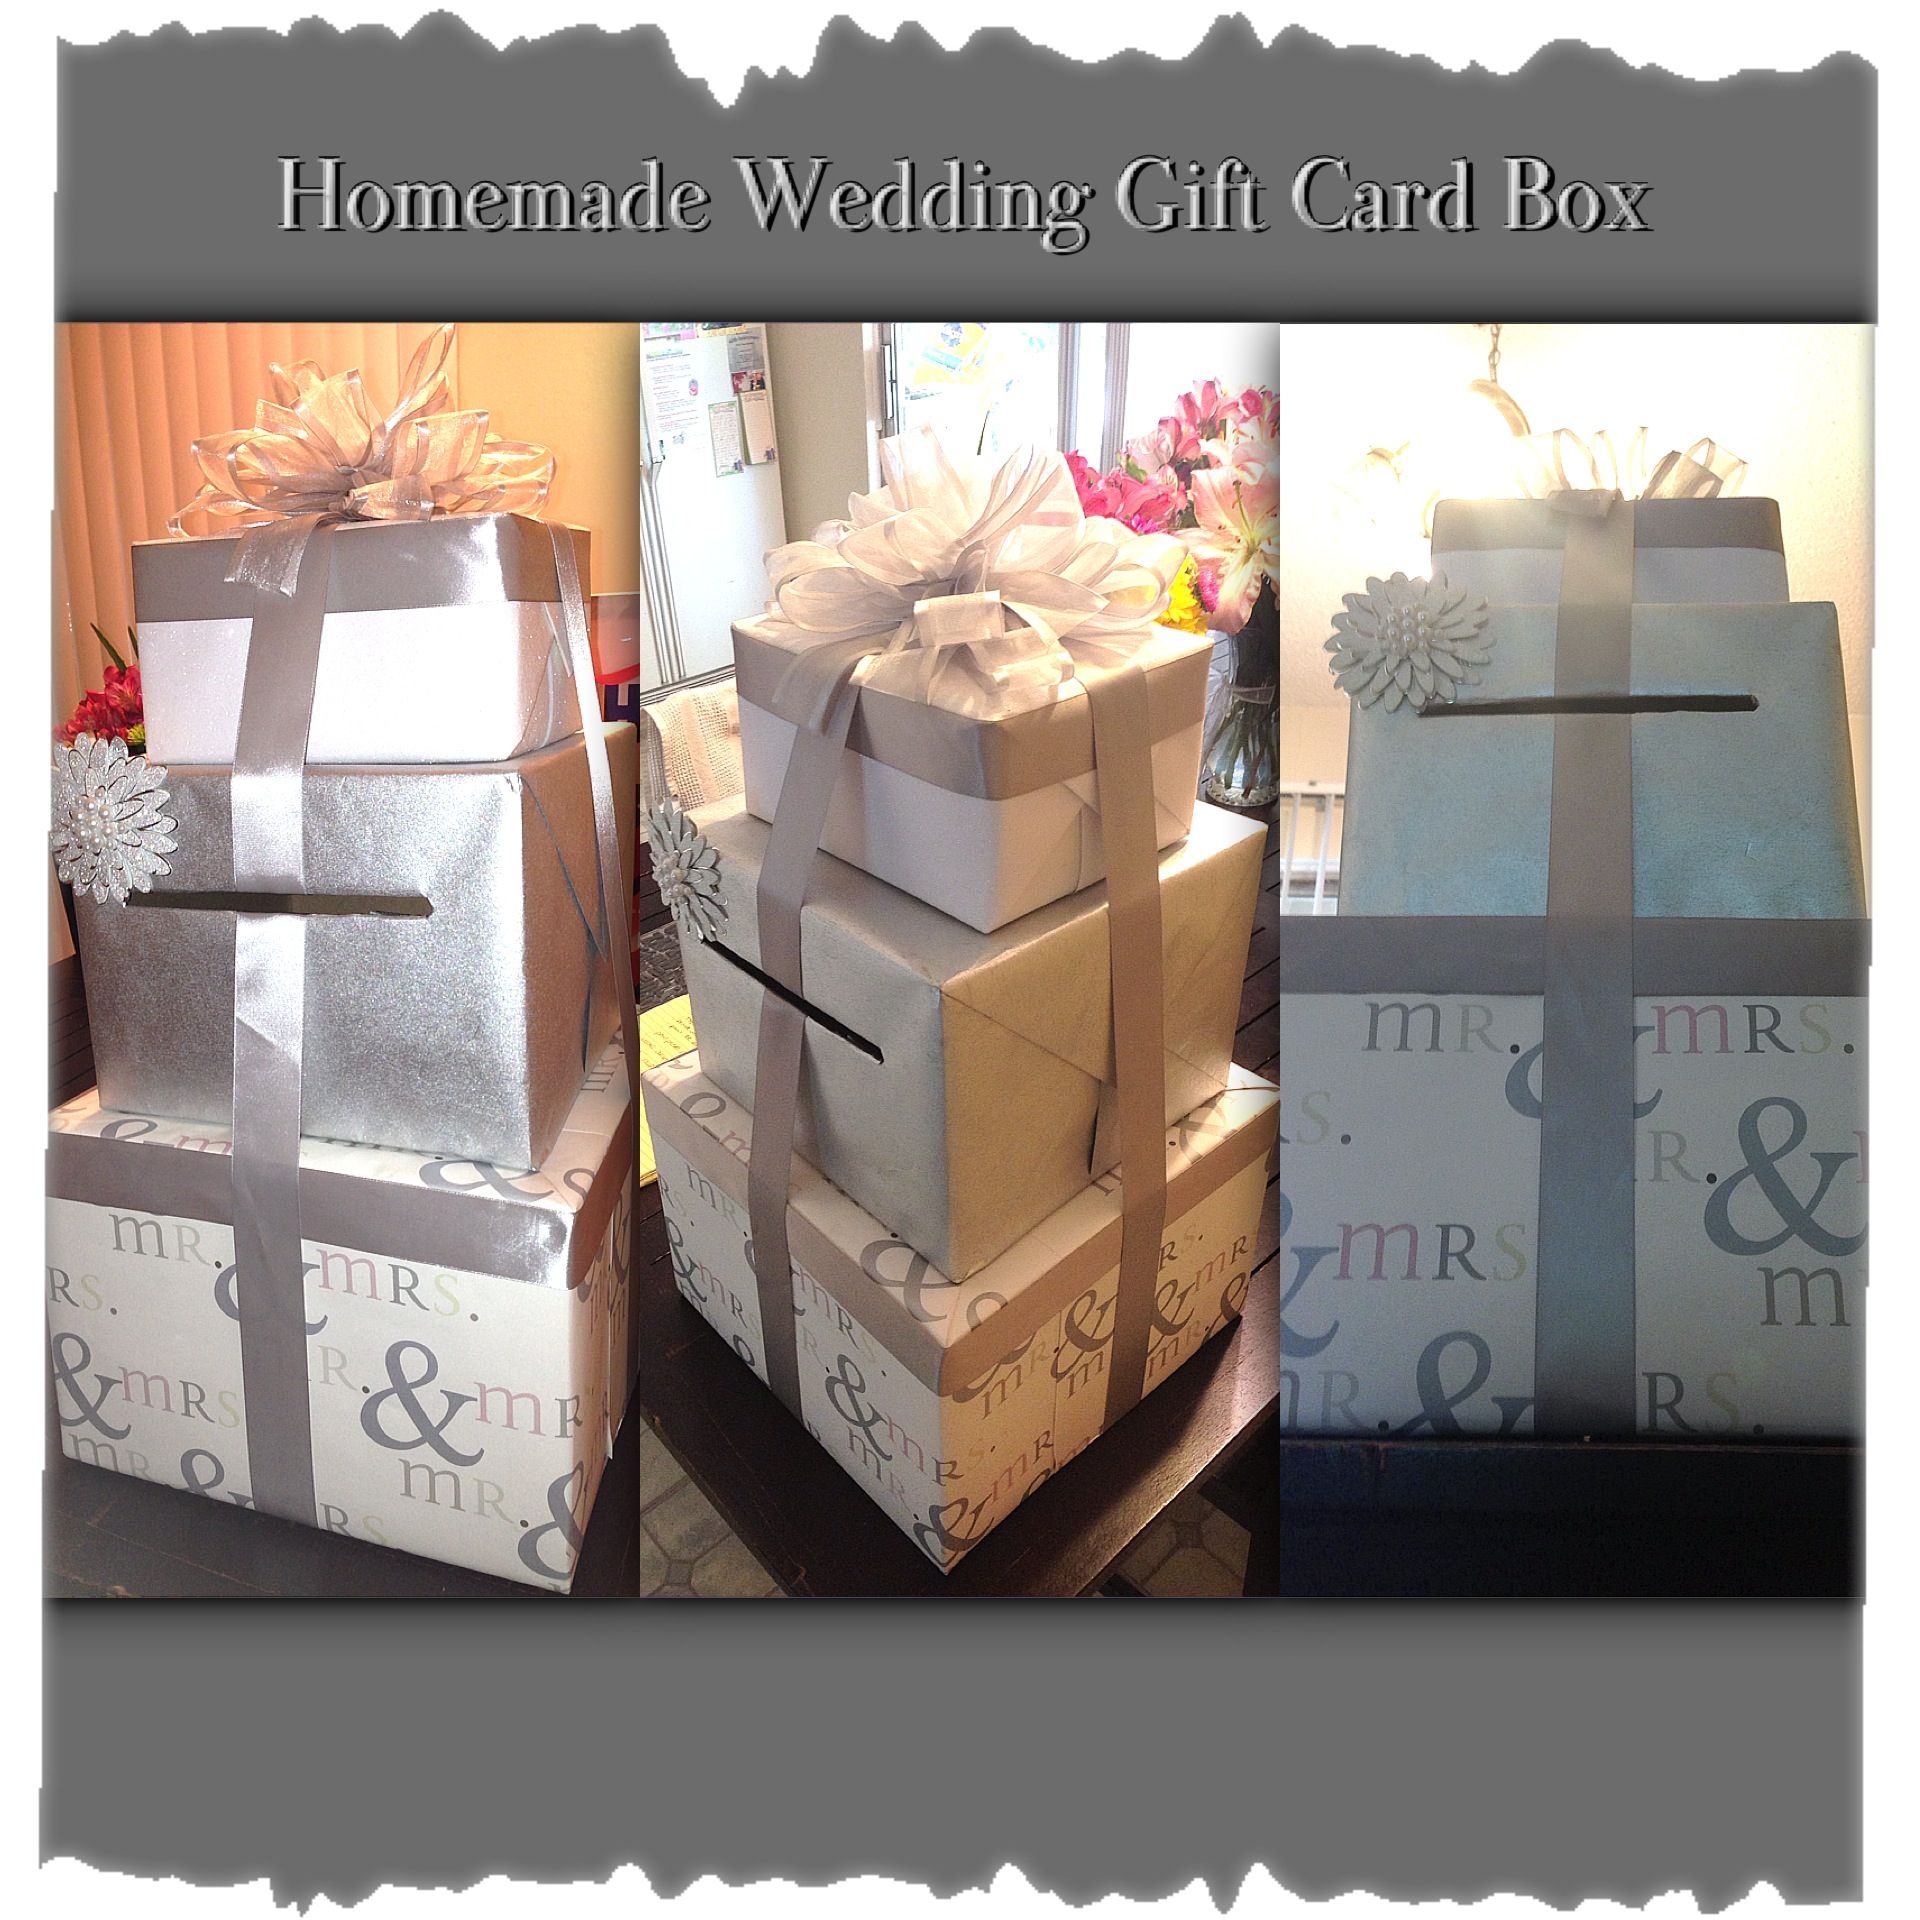 Homemade Wedding Gift Card Box Just Wrap Cardboard Boxes With Nice Wrapping Paper And Add Ribbon Wedding Gift Card Box Card Box Wedding Reception Card Holder